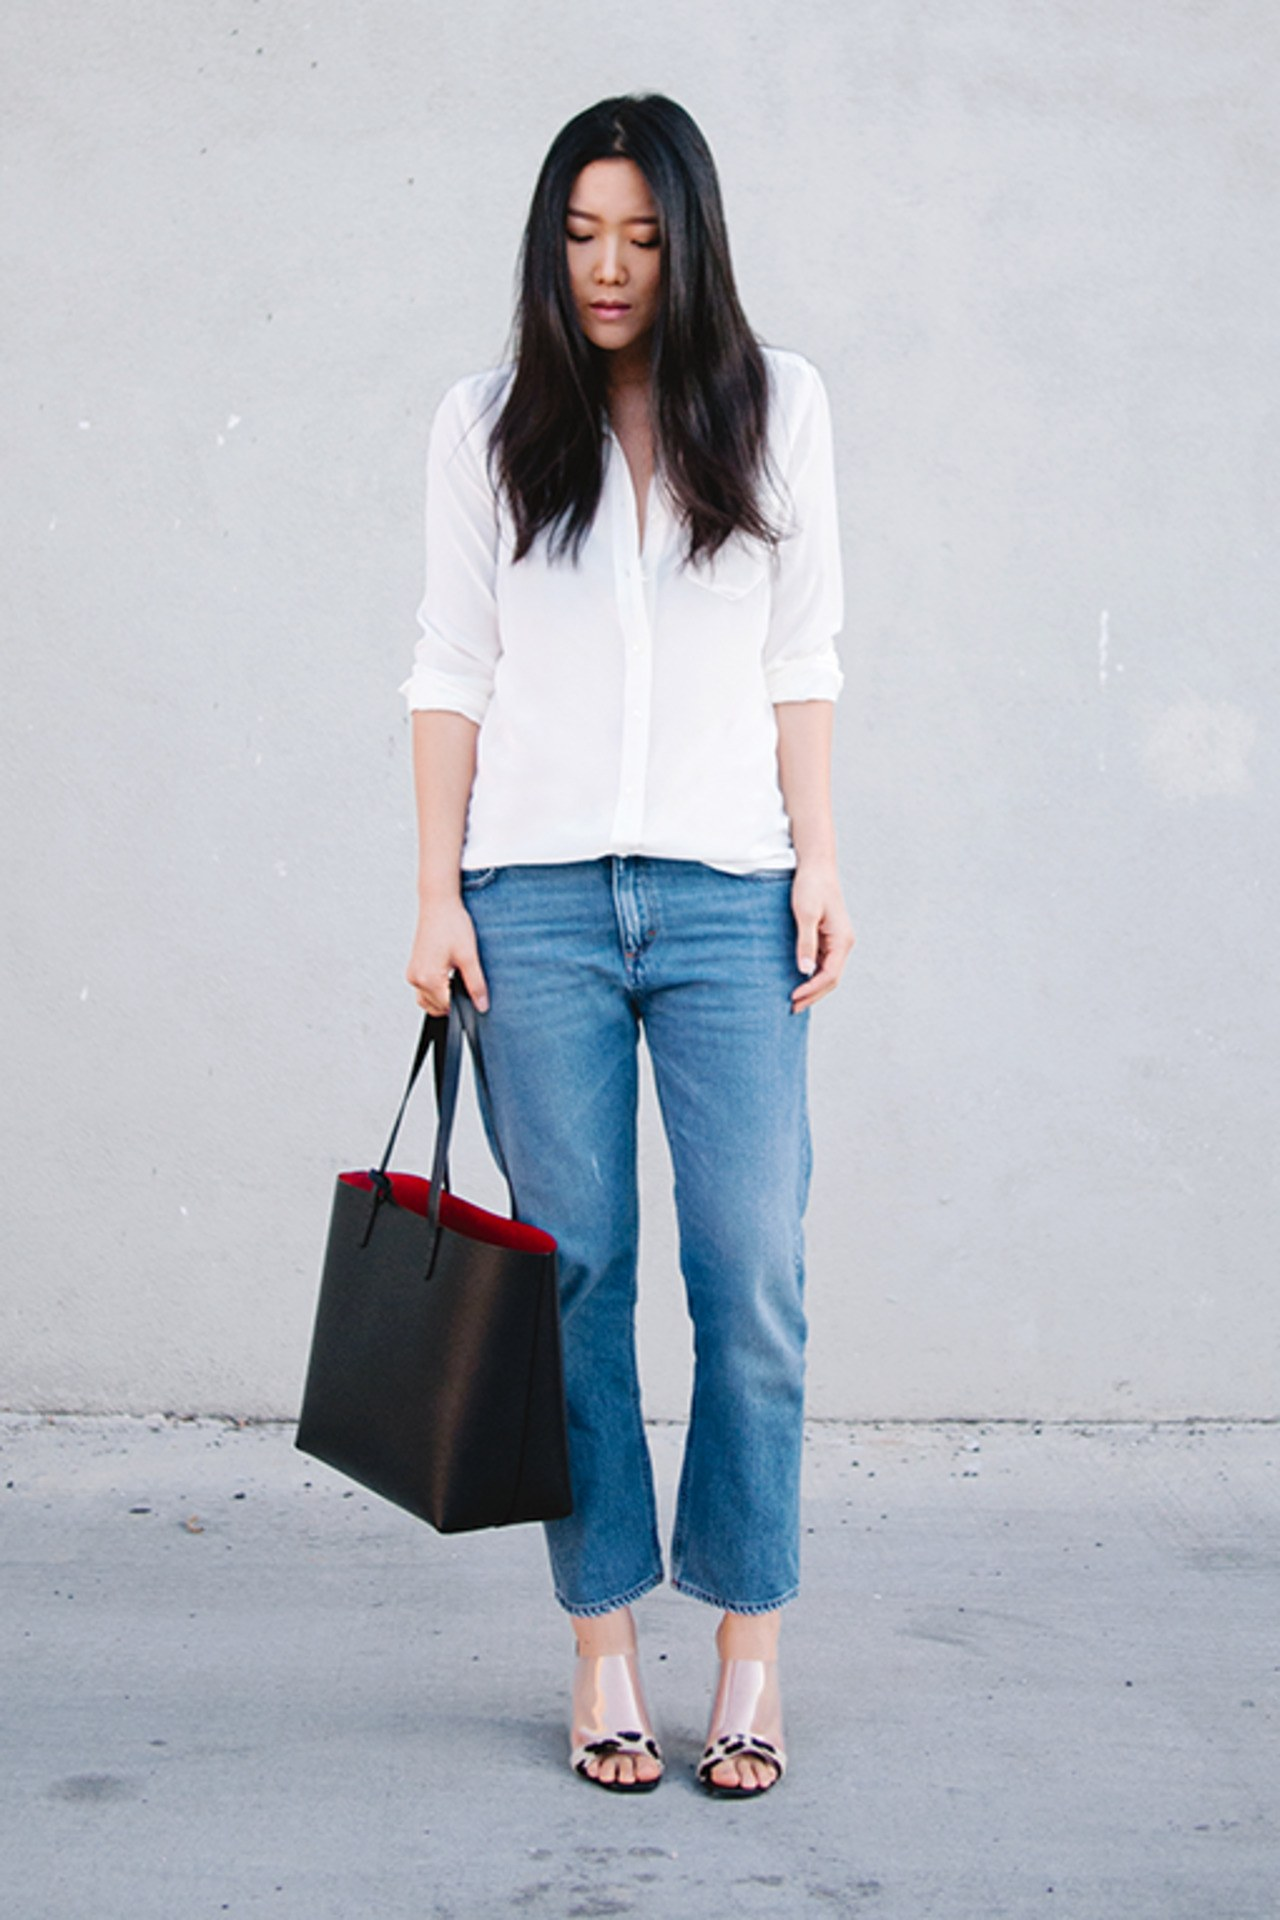 fashion-2015-11-white-shirt-outfit-ideas-weekend-jeans-statement-heels-andy-heart-main